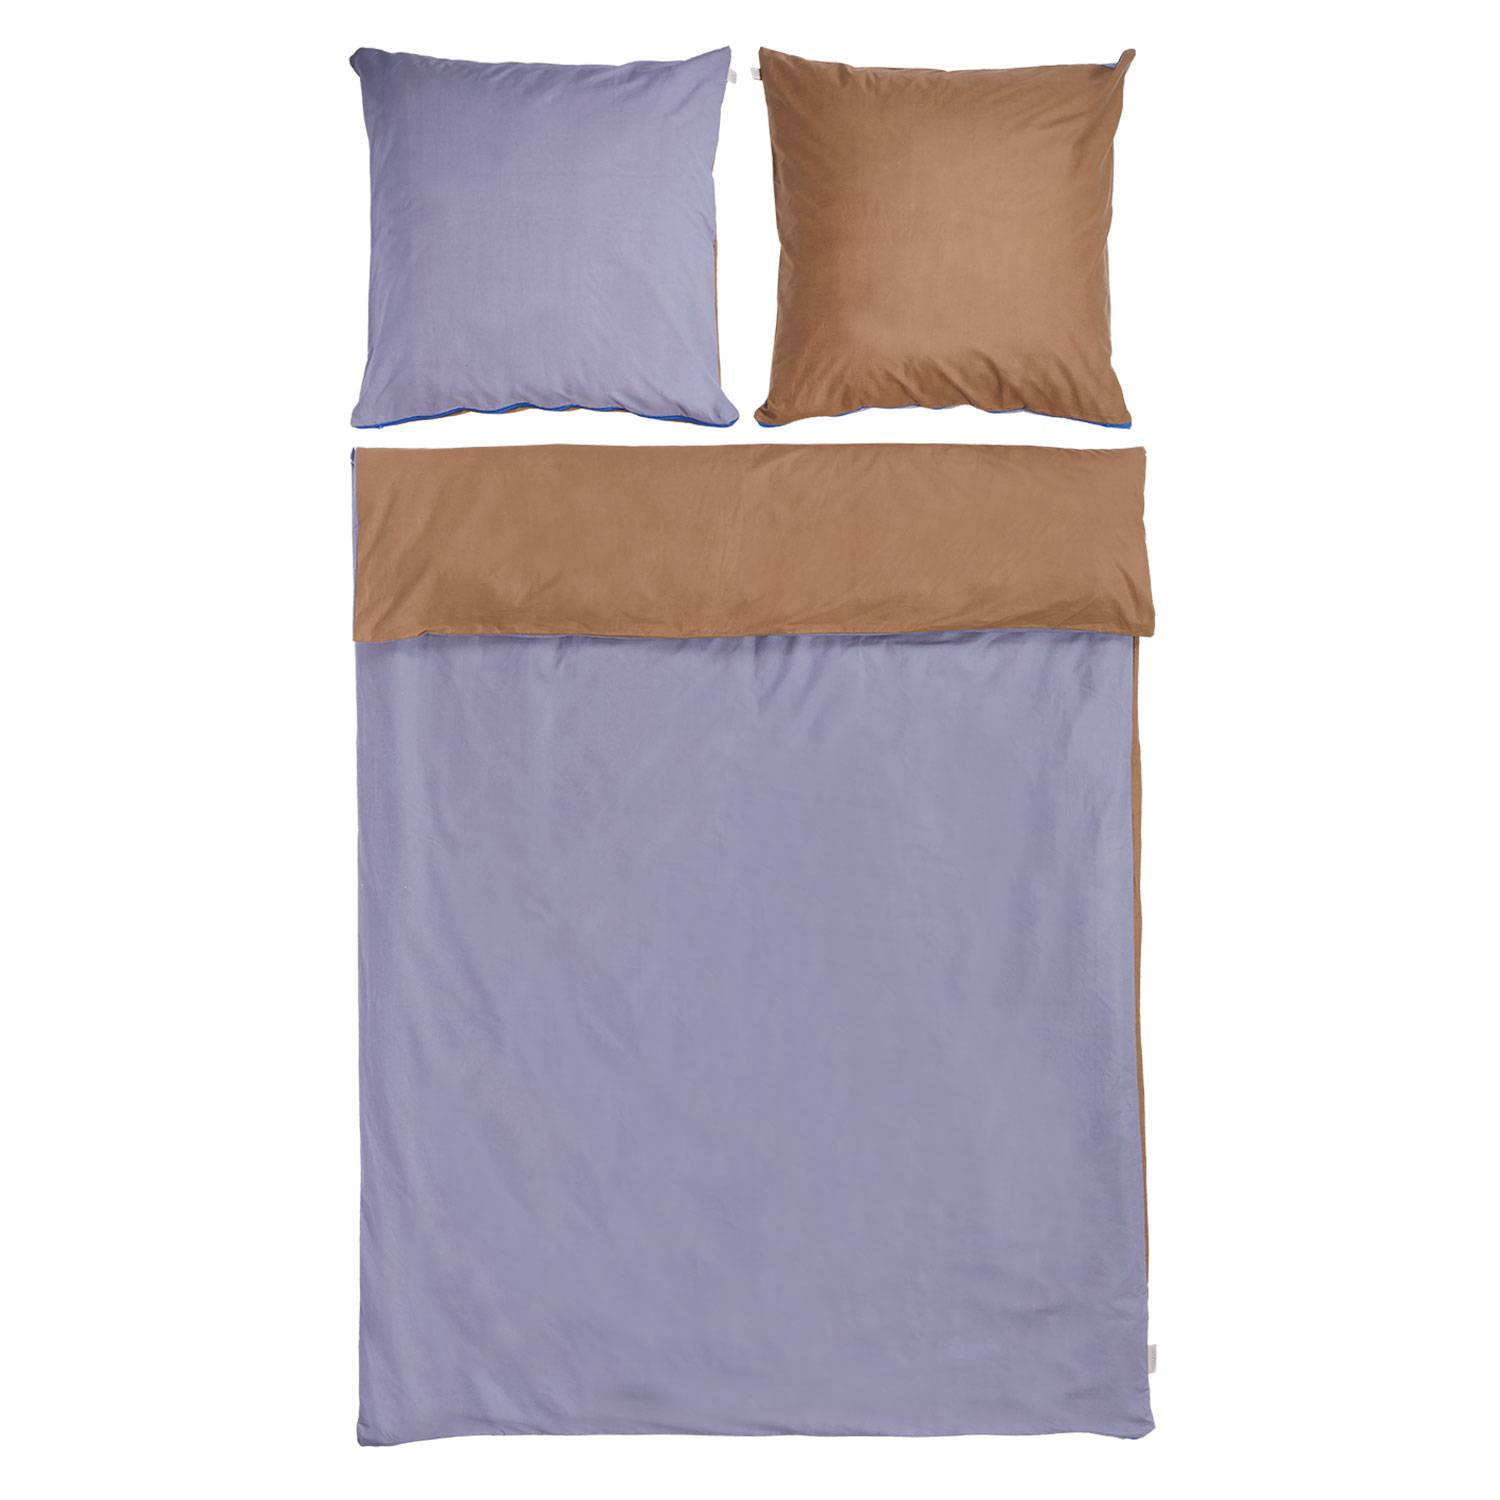 Mette Ditmer Shades Bed Set 150x210cm, Light Lilac